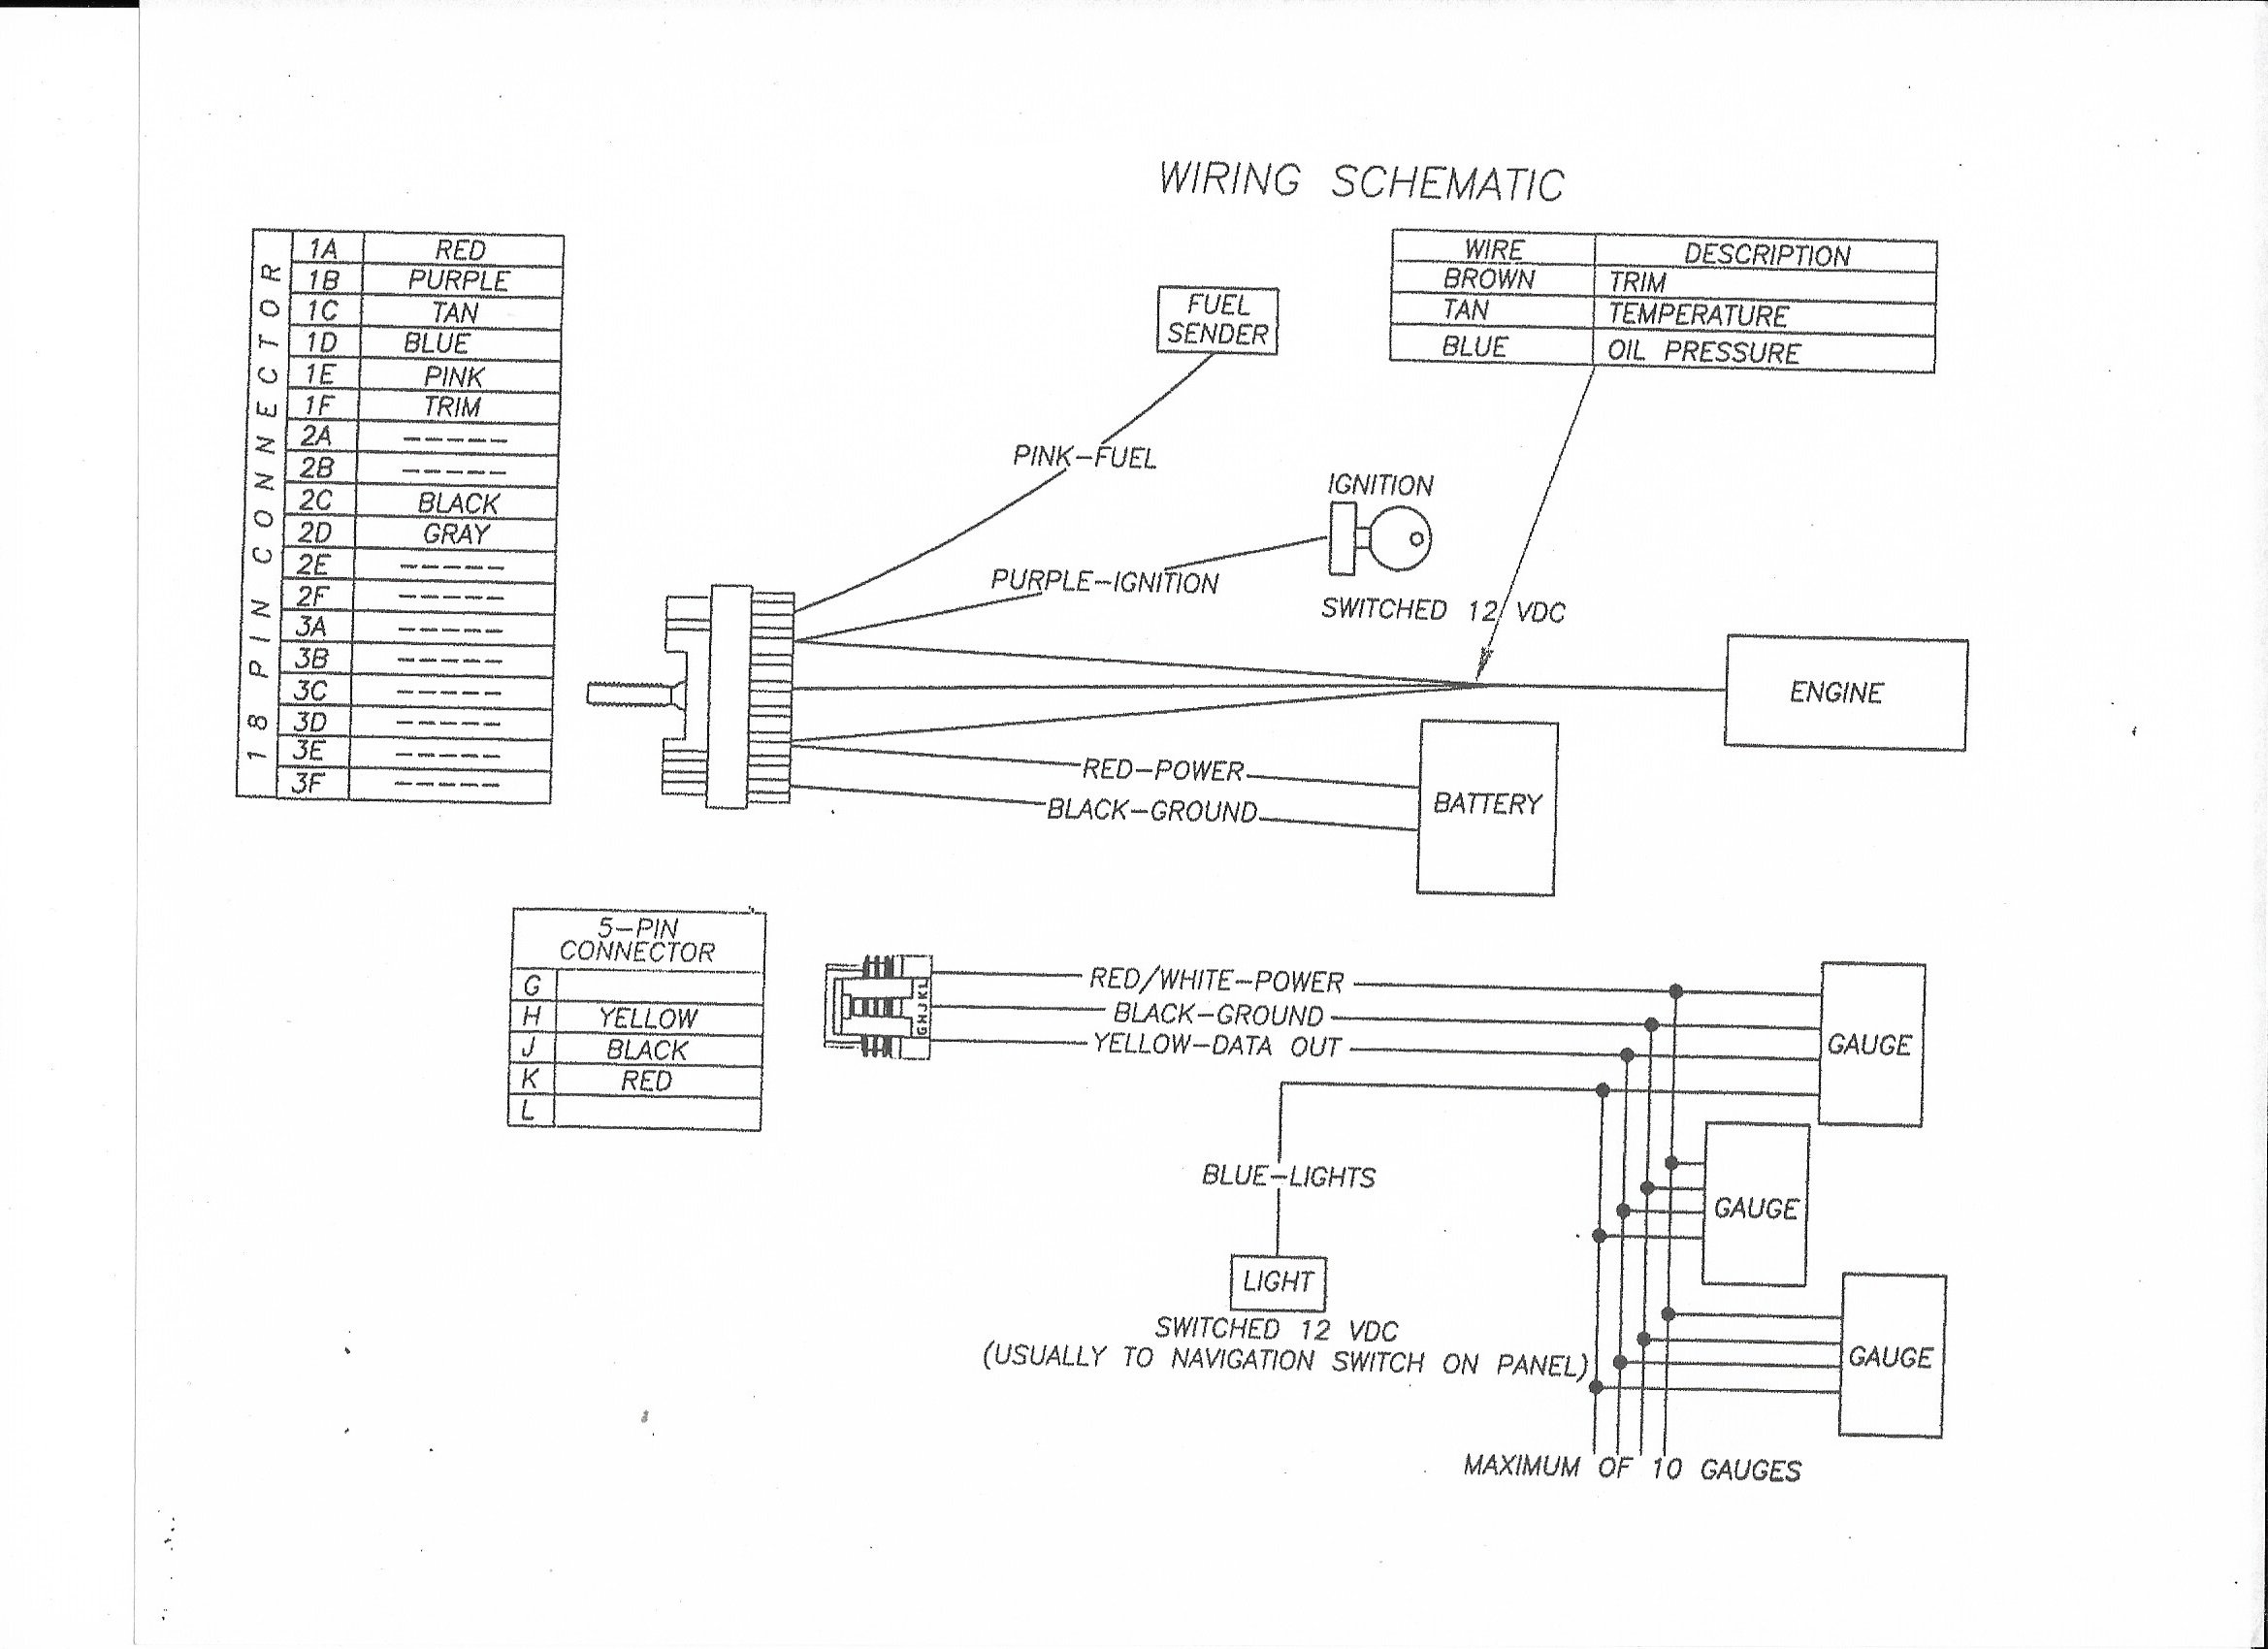 Yamaha 10 Pin Wiring Harness Diagram from f01.justanswer.com